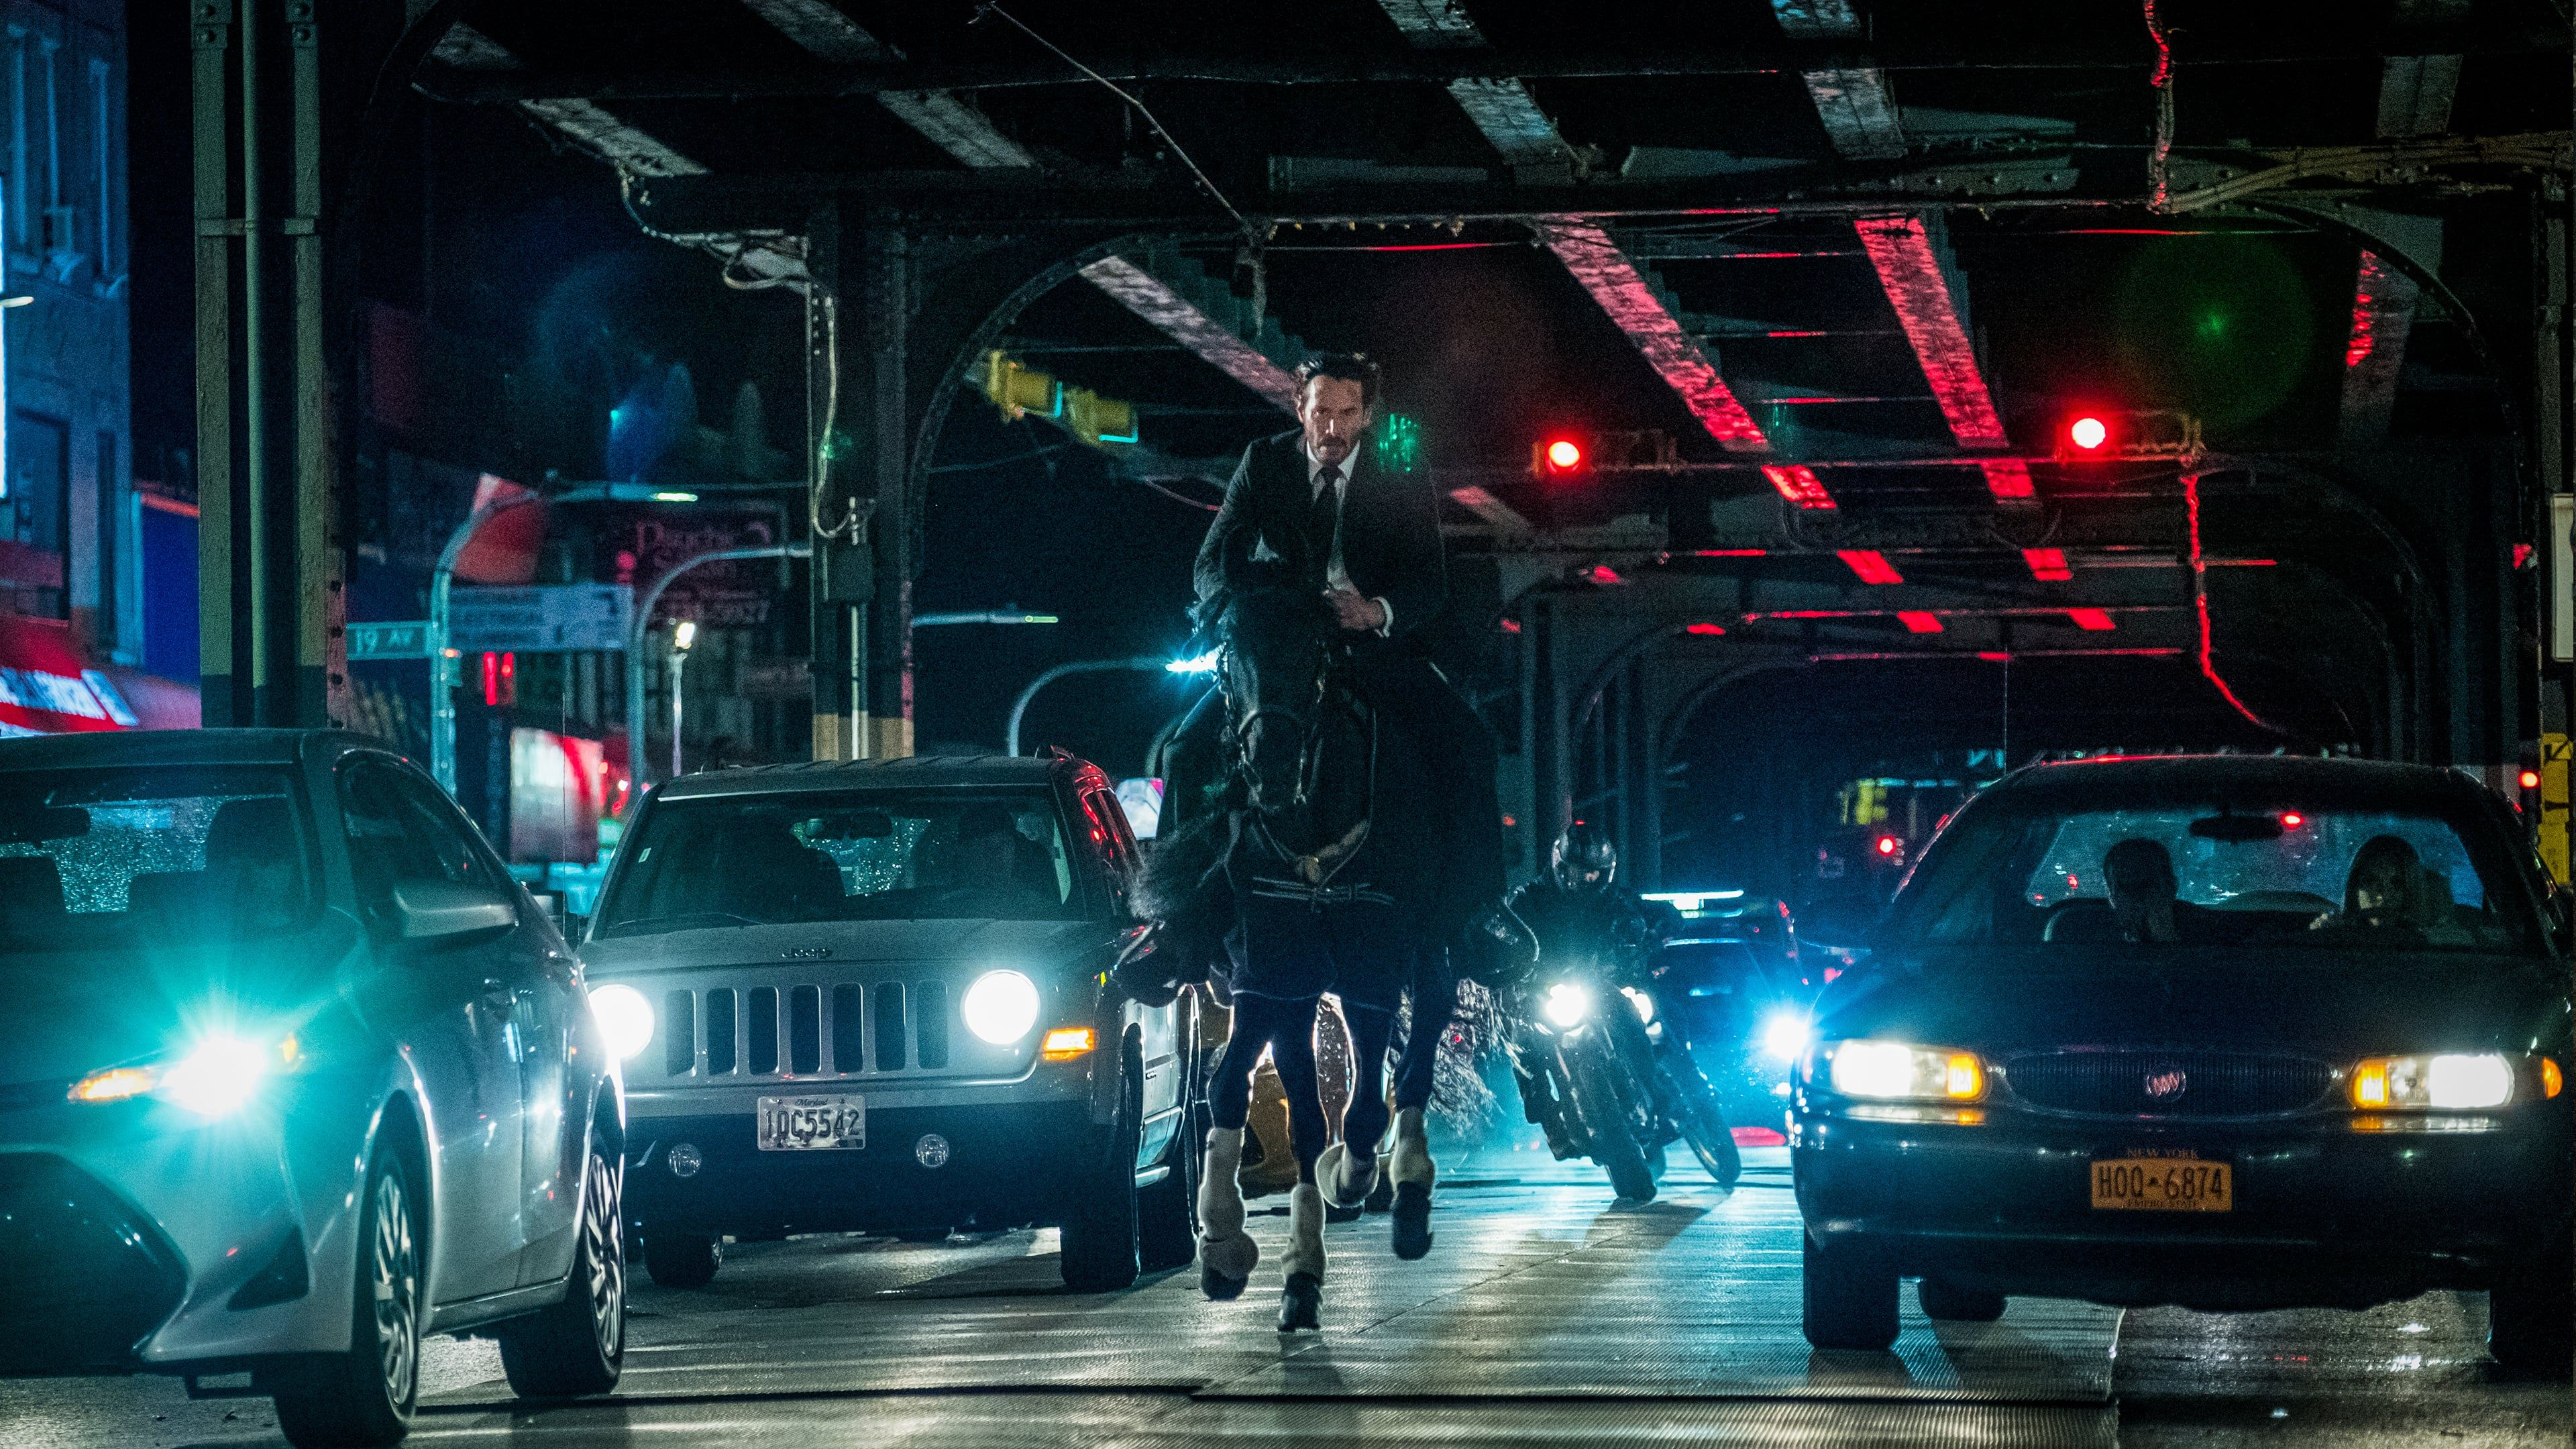 Watch John Wick 3 Parabellum 2019 Full Movie Online Free John Wick Is On The Run For Two Reasons He S Being H John Wick Movie Watch John Wick Full Movies